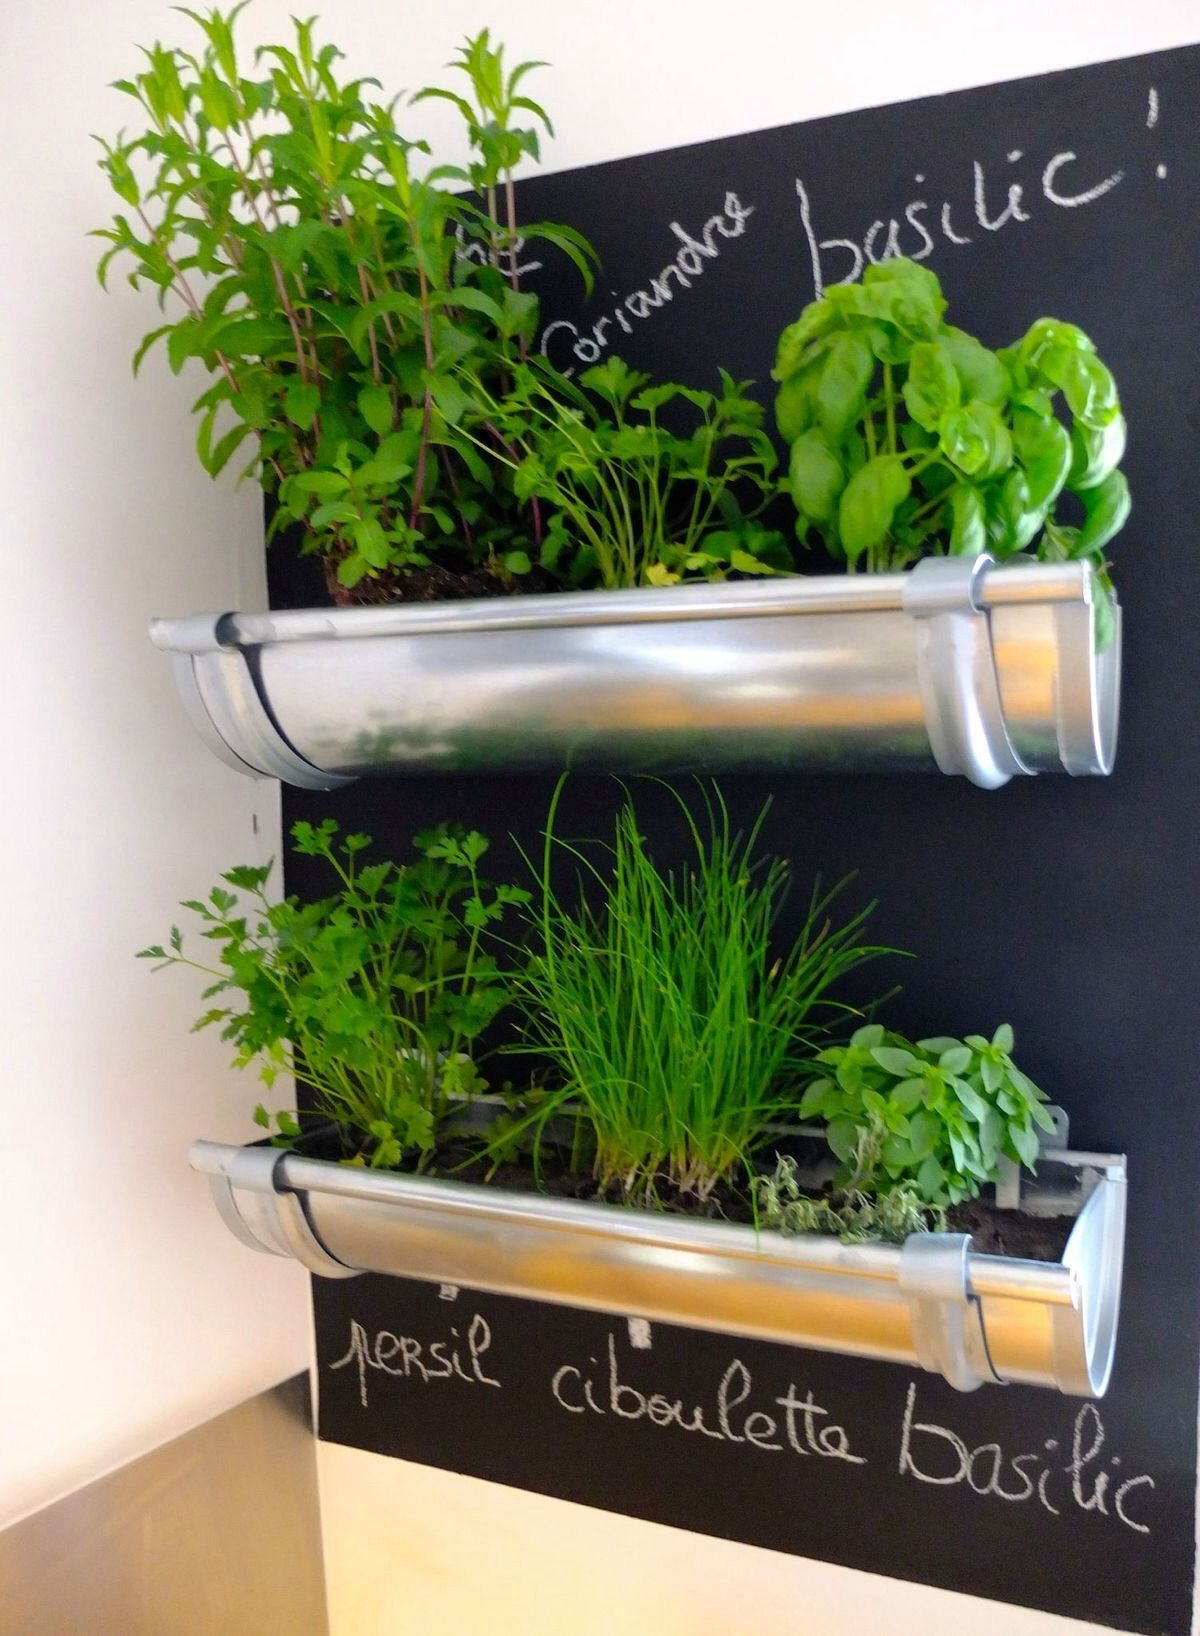 Plante-herbe-aromatique-idee-decoration-diy-do-it-yourself-cuisine